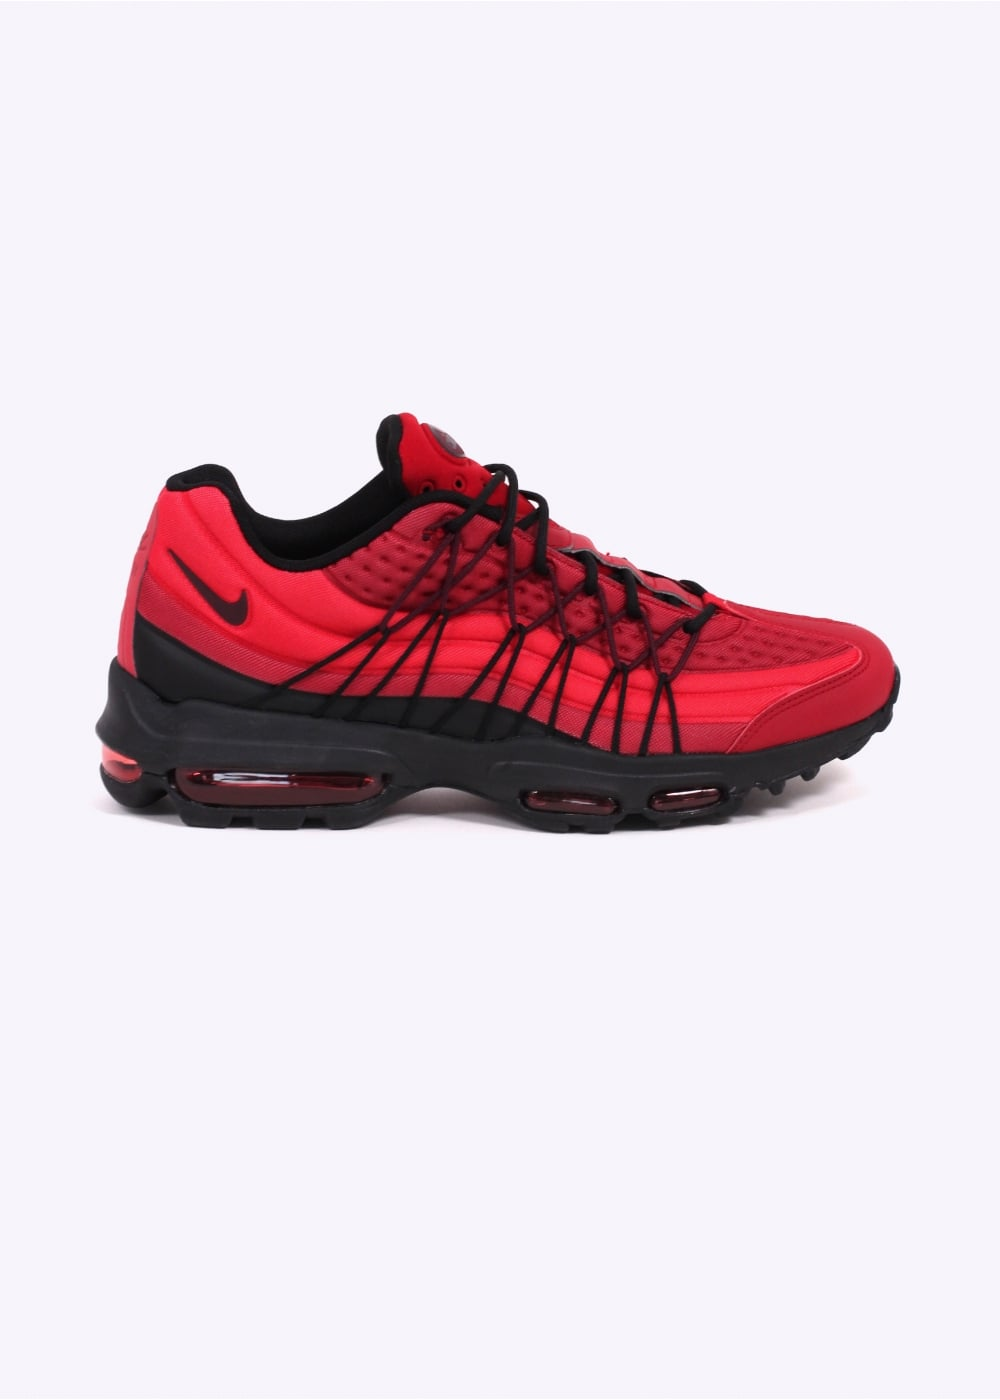 cfb12a52f5be Nike Footwear Air Max 95 Ultra SE - Gym Red - Trainers from Triads UK